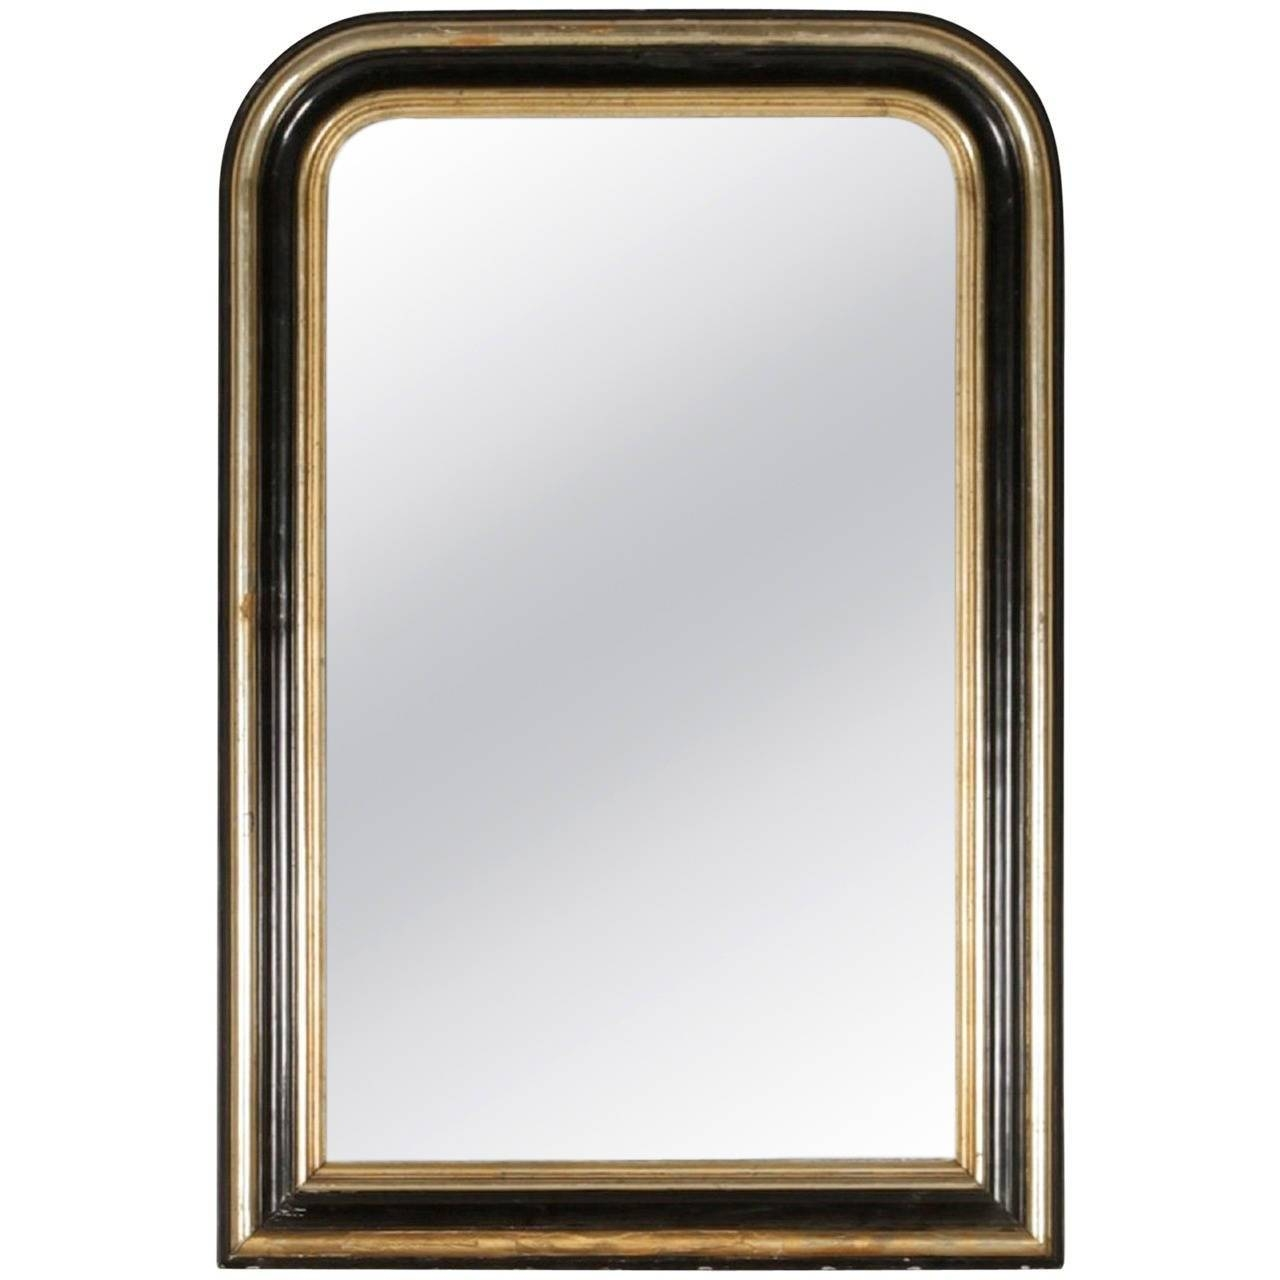 Ebonized And Silver Gilt Louis Philippe Mirror With Molded Frame Regarding Large Silver Gilt Mirrors (View 2 of 15)